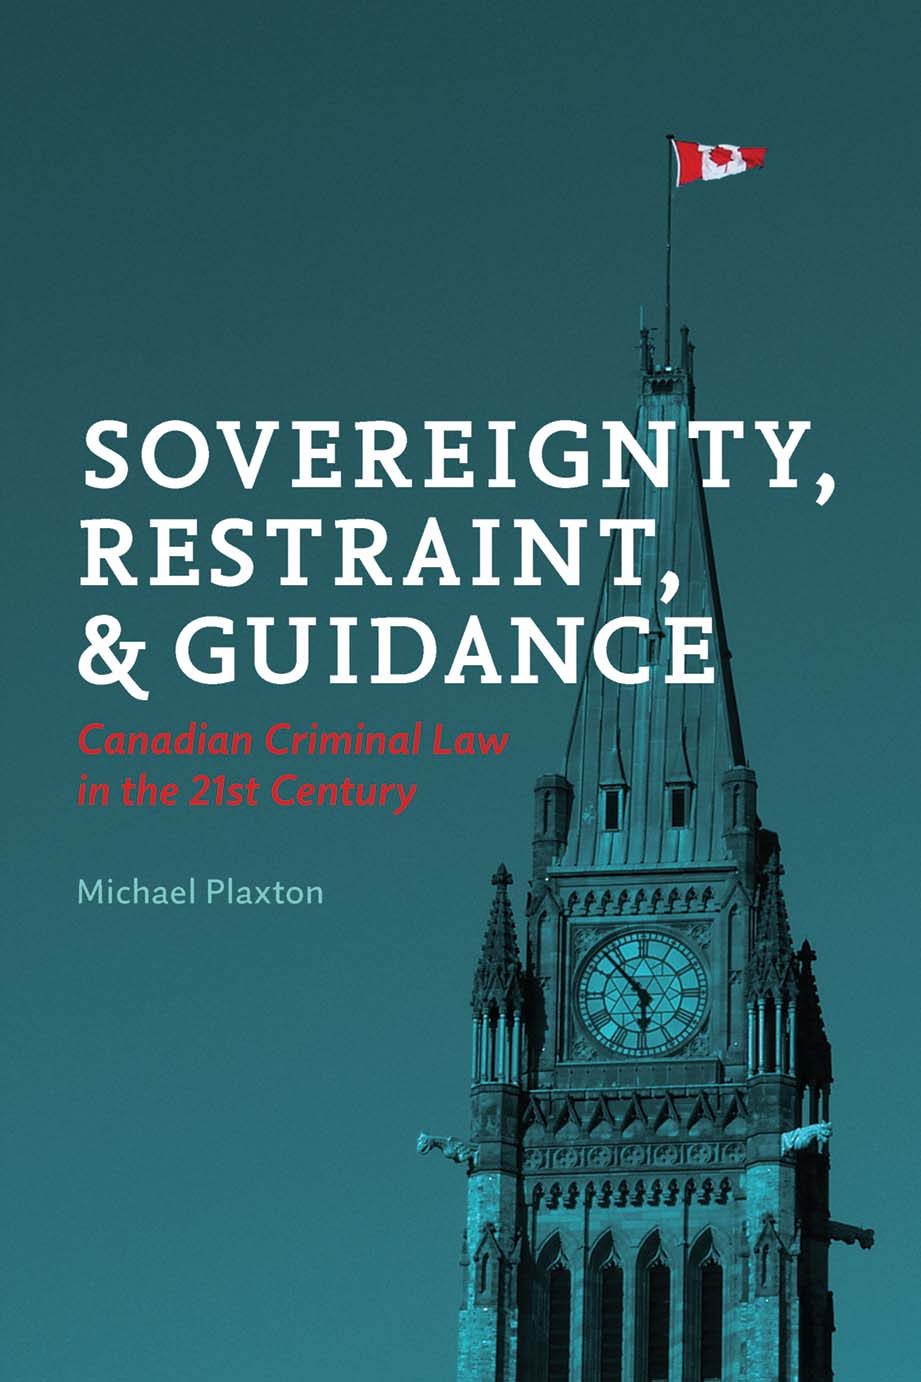 Book cover for Sovereignty, Restraint, and Guidance by Michael Plaxton, showing Canada's Parliament building tinted in dark blue and the Canadian flag in white and red.